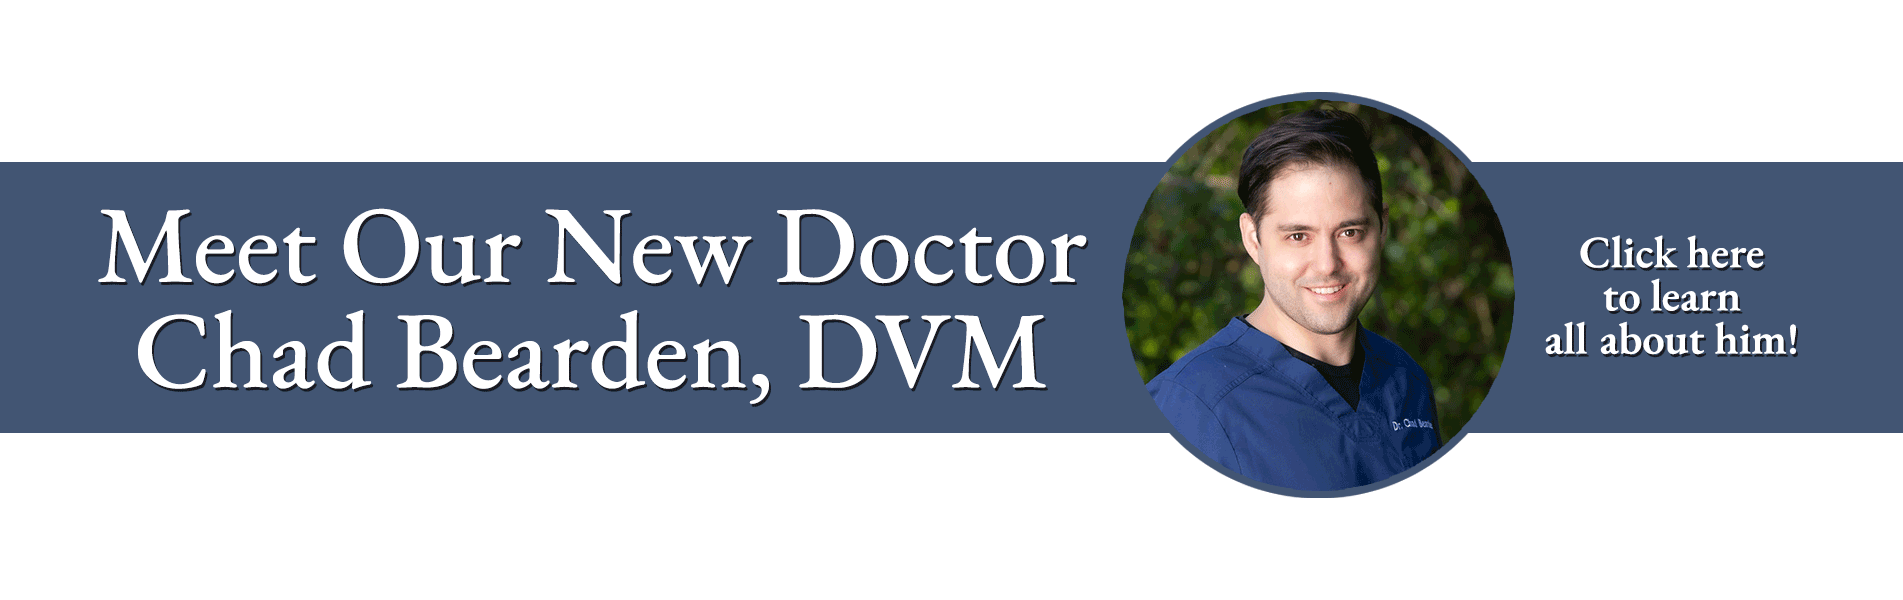 Meet Our New Doctor Chad Bearden, DVM